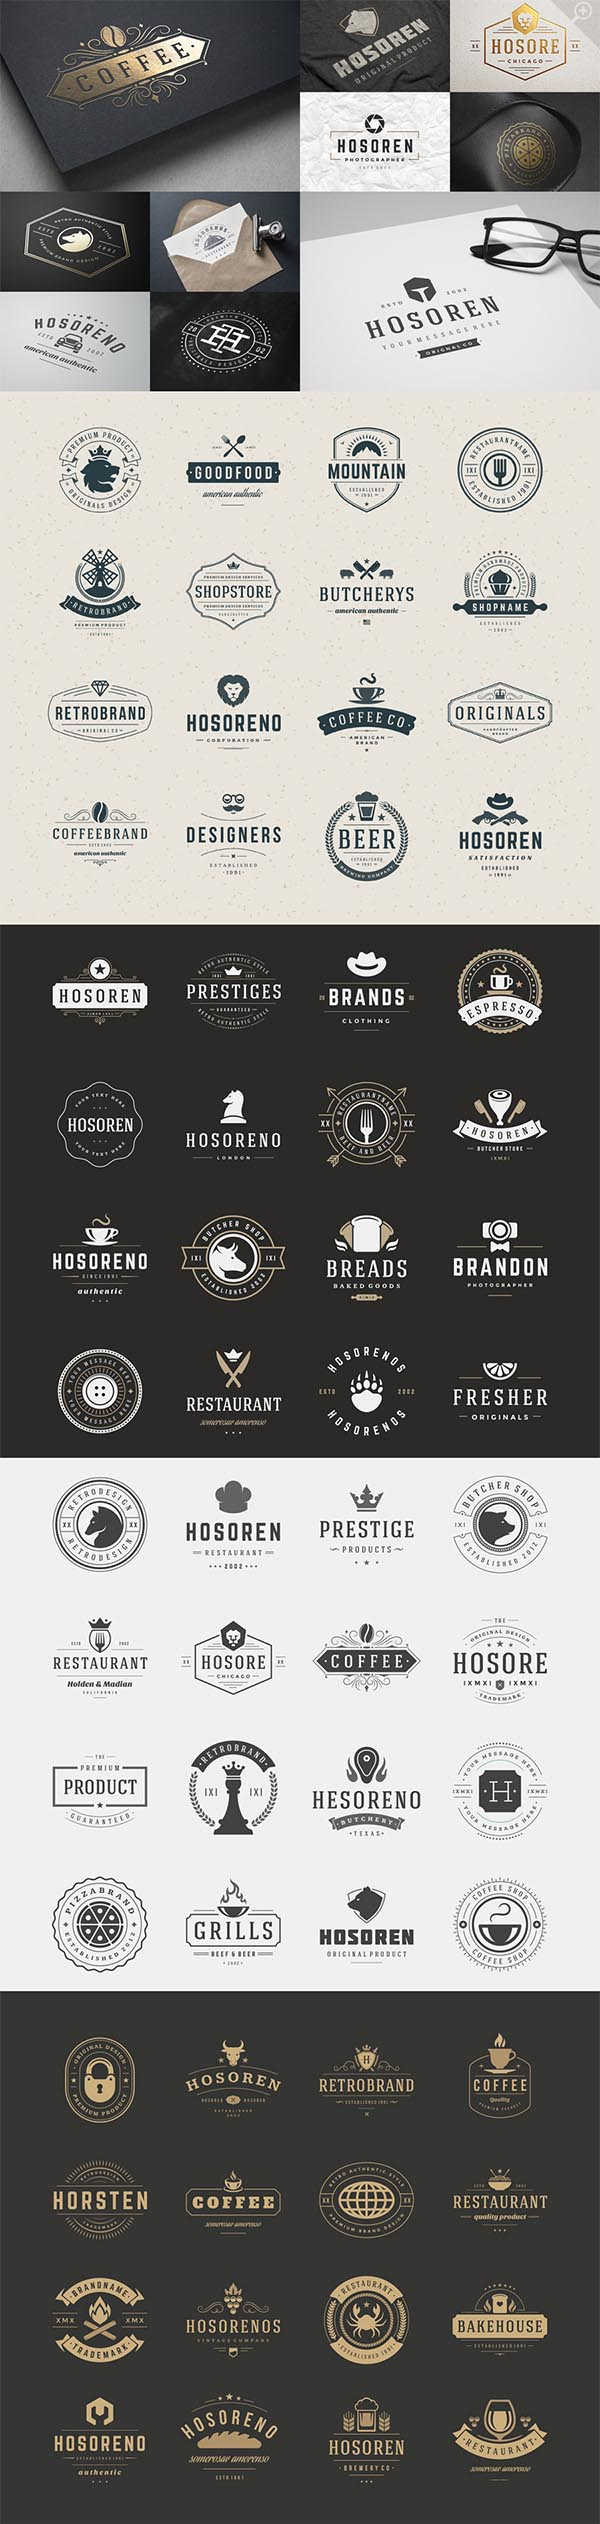 700 Retro Vintage Logotypes and Badges - 1